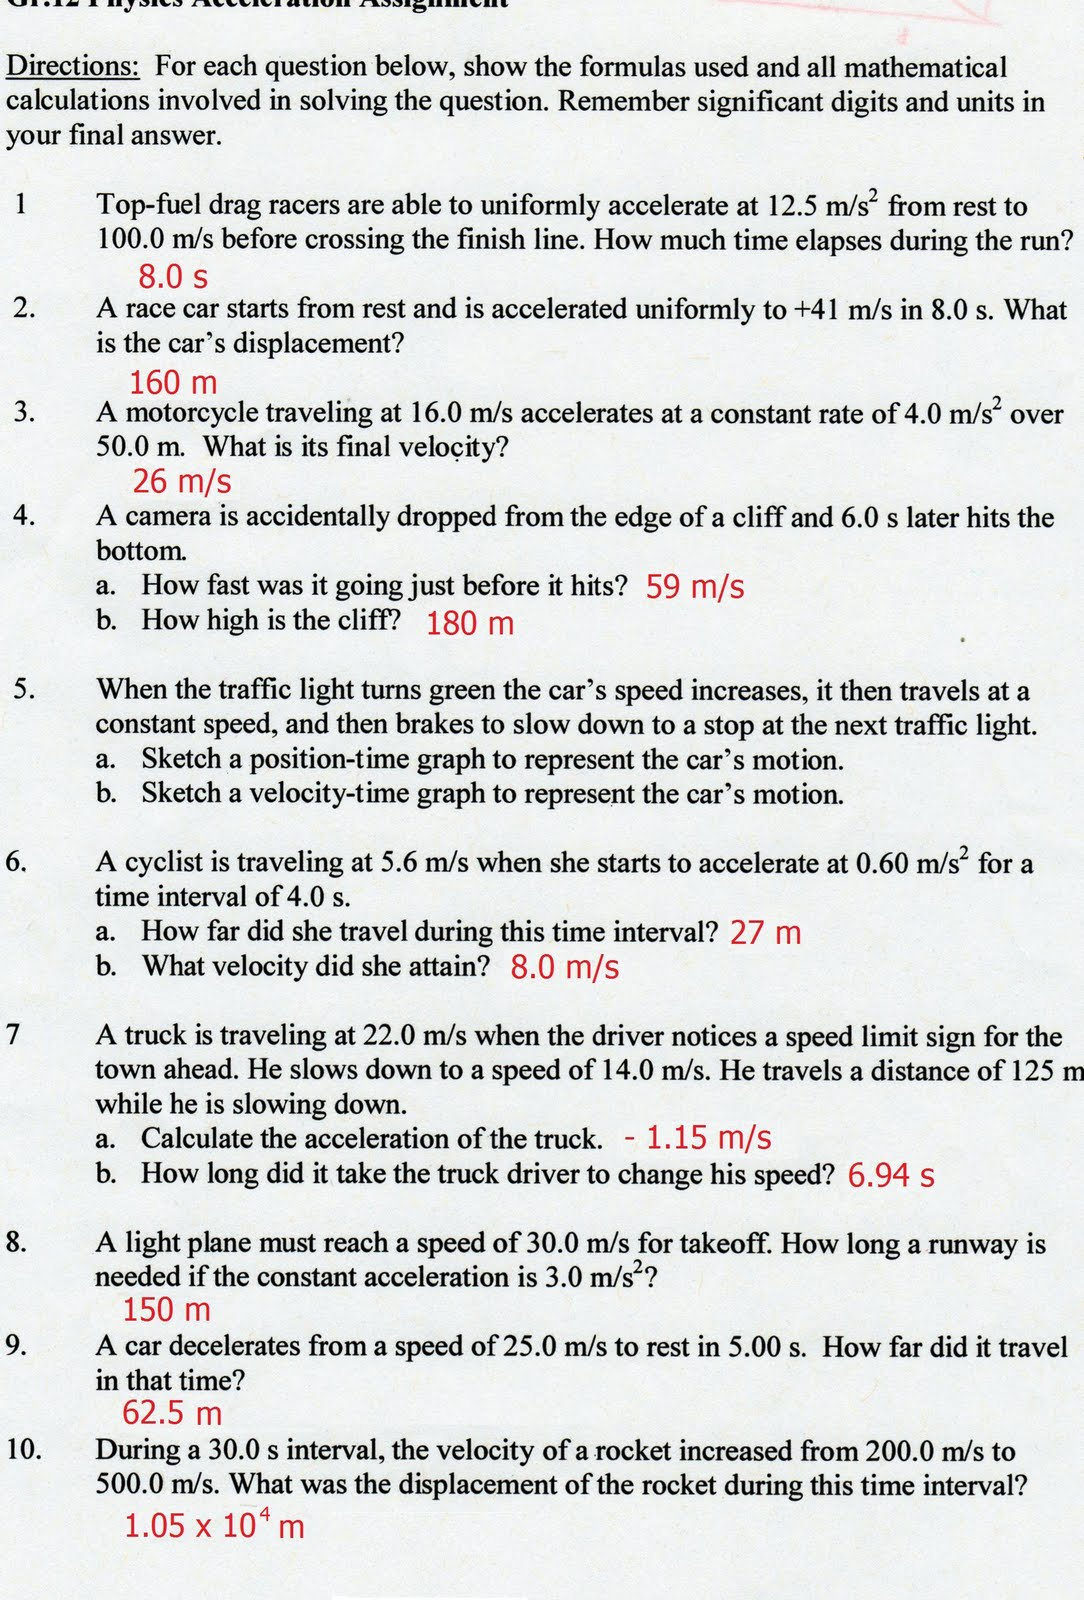 Worksheets Velocity And Acceleration Calculation Worksheet Answers physics12fall2010 so im just reposting the worksheet with answers for those who might not have seen on amys previous post followed by question 5